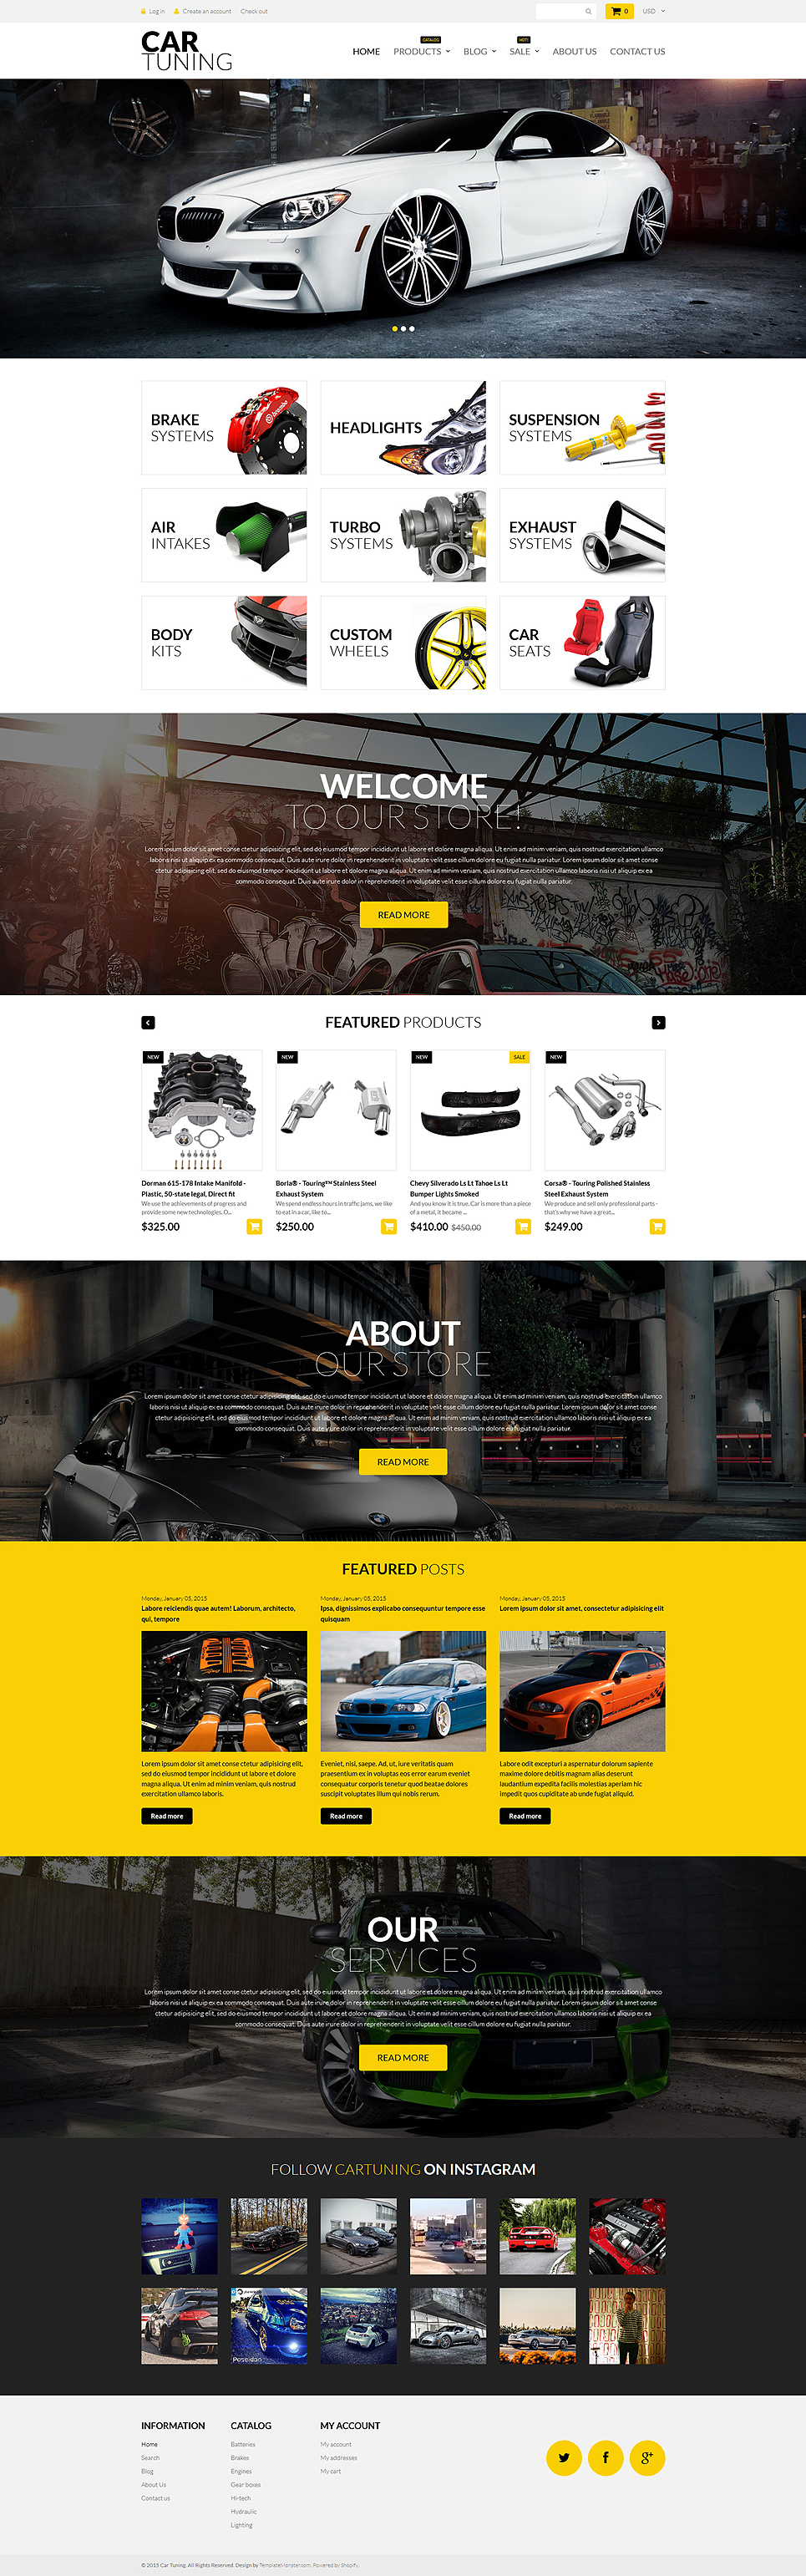 Car Tuning (theme for Shopify) Item Picture